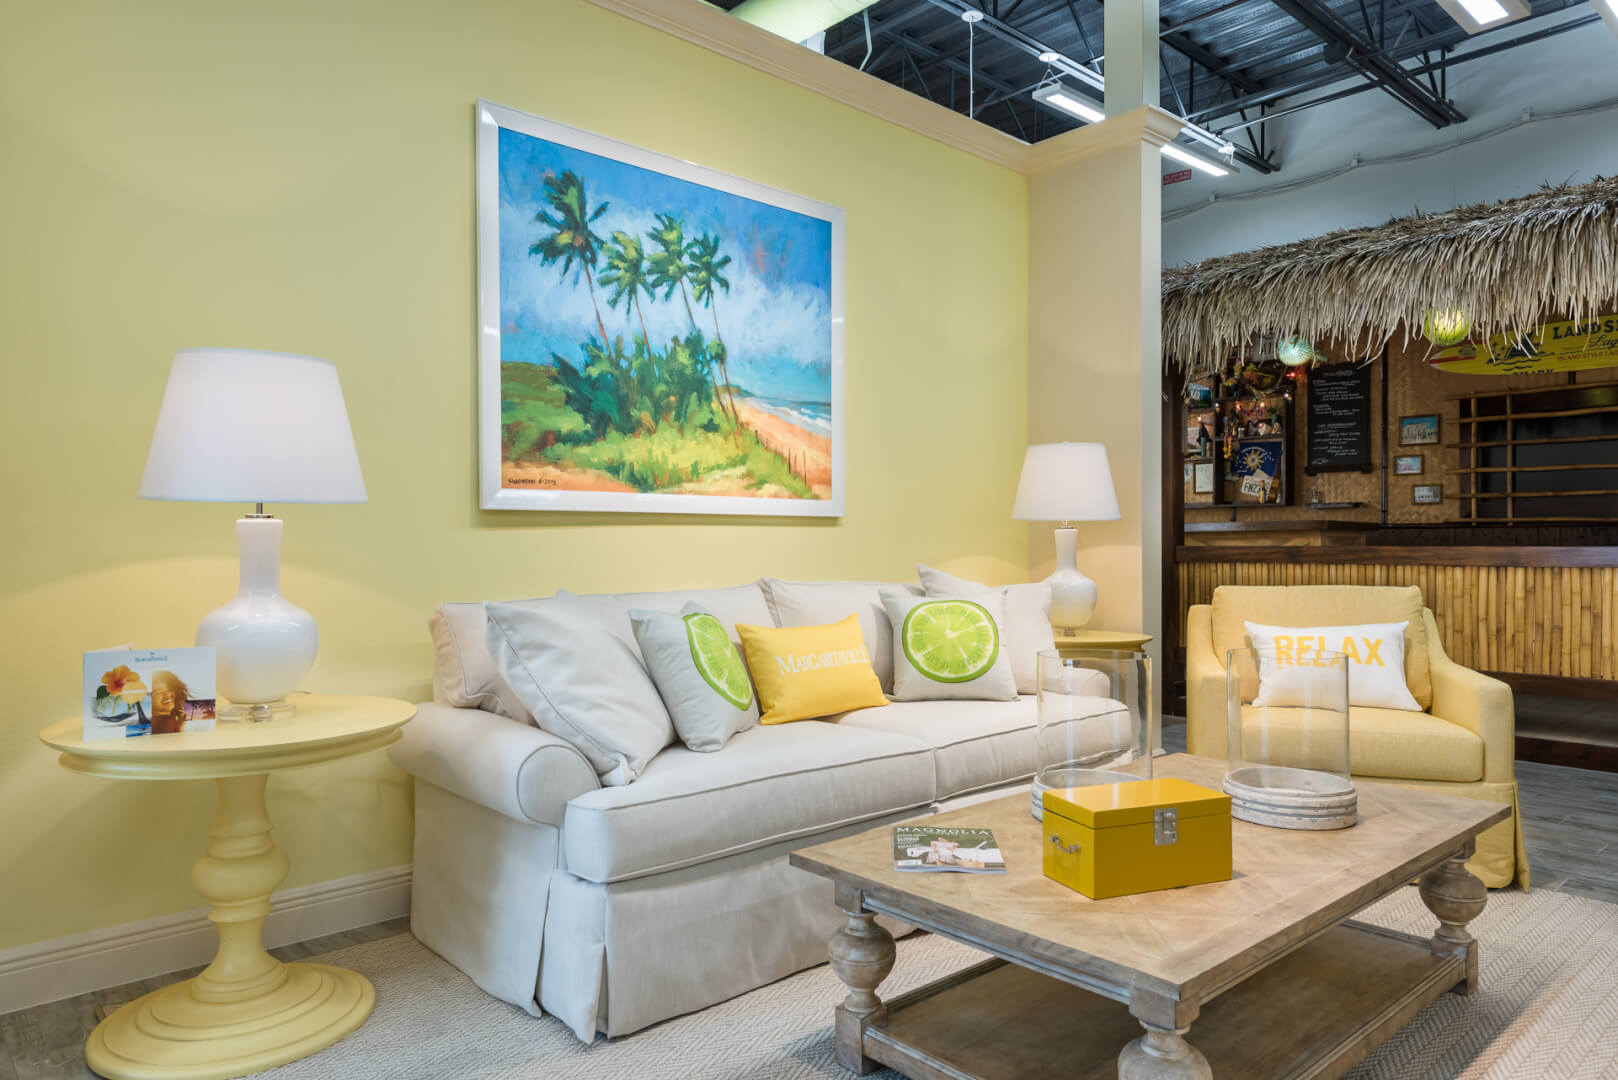 Margaritaville resort orlando introduces chic ethan allen furniture collections for vacation for Hotel bedroom furniture packages